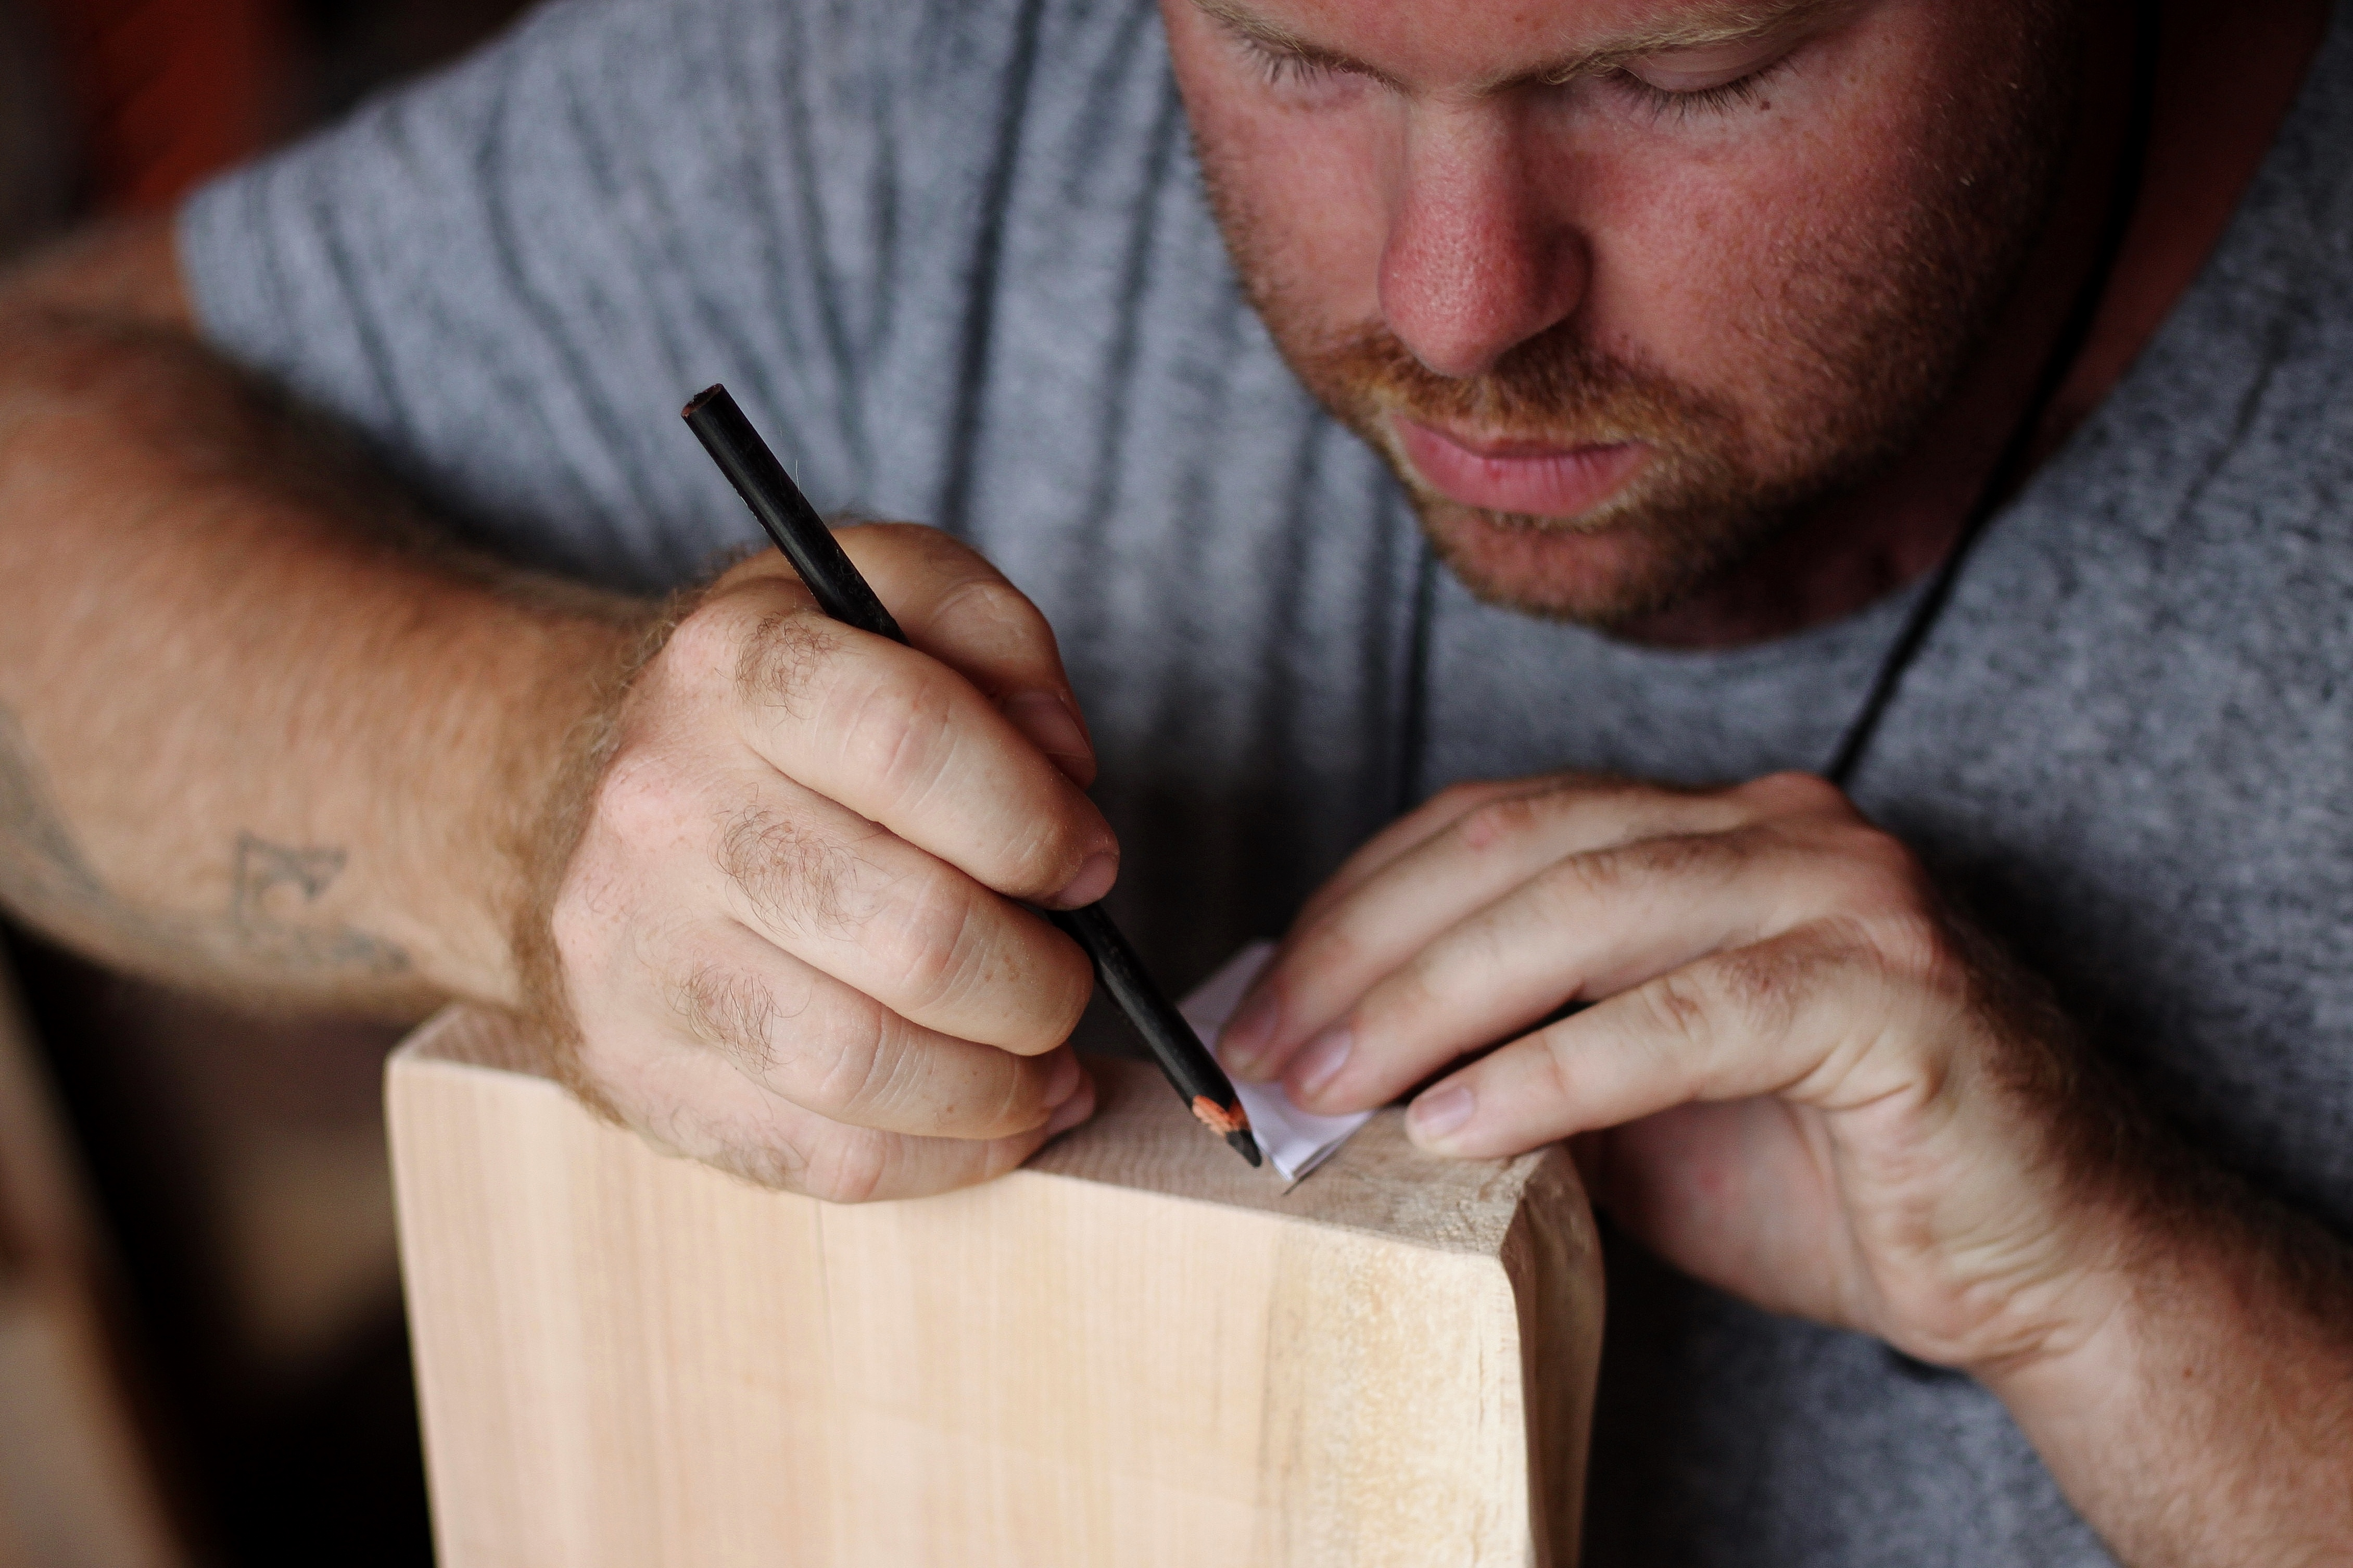 Get to Know a Local Creator: Nick Allinson